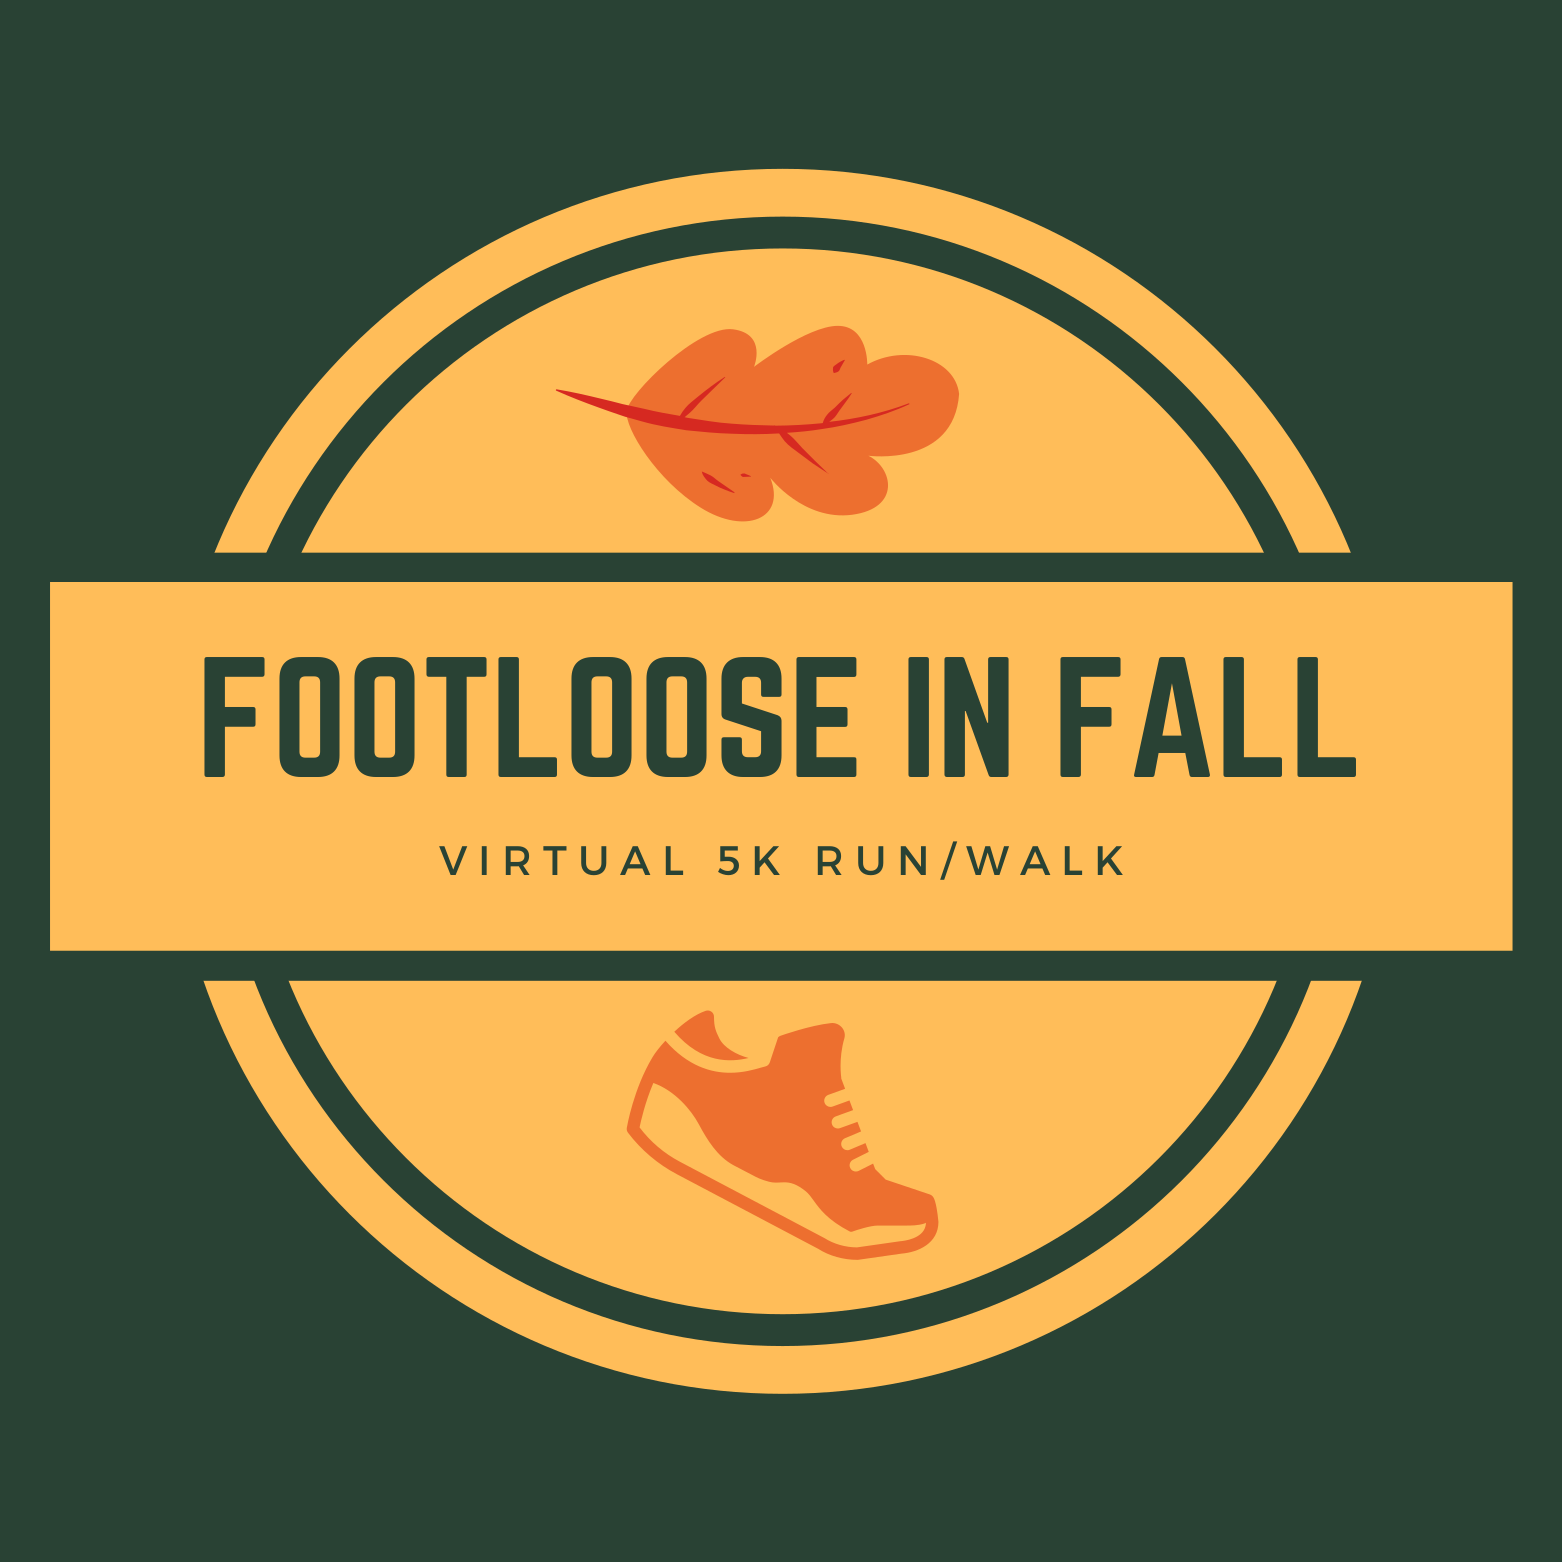 This is a picture of the Footloose in Fall 5K logo.